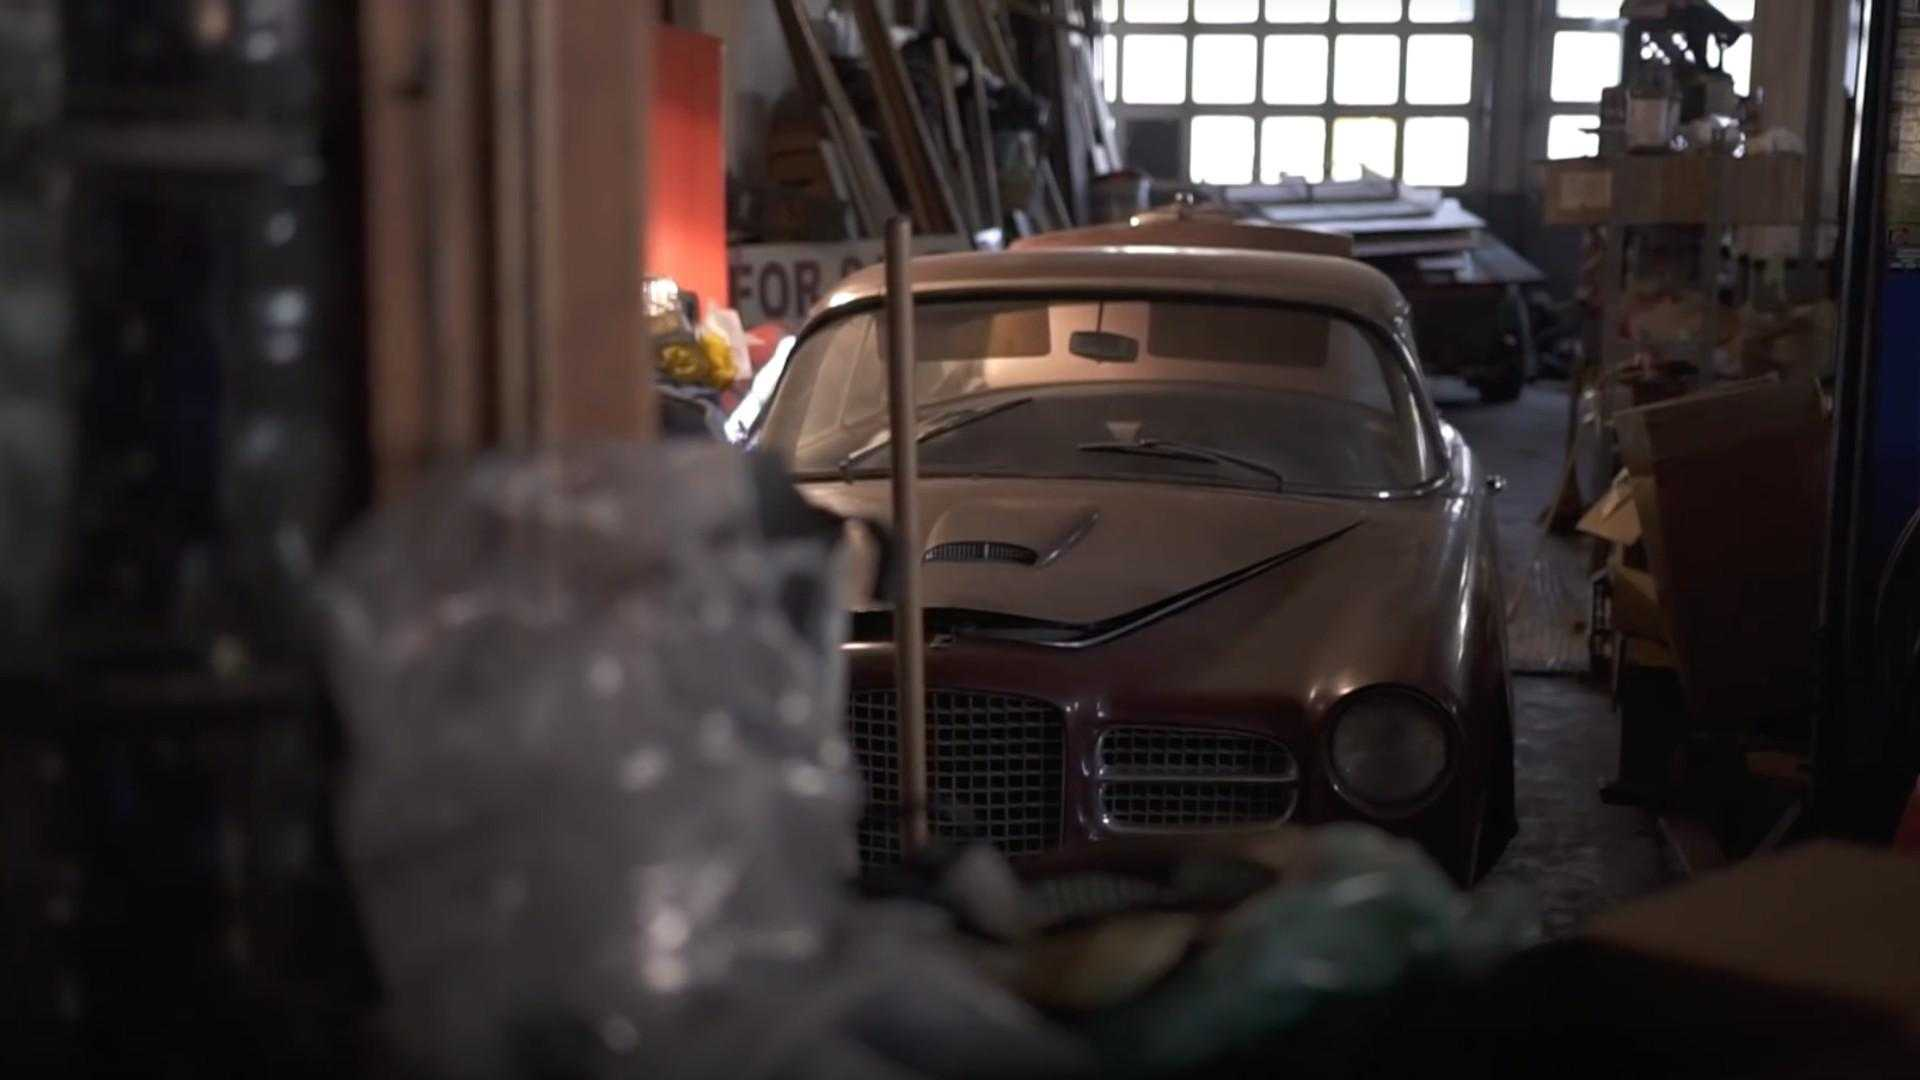 exotic vintage barn finds stashed away in old buick dealership3